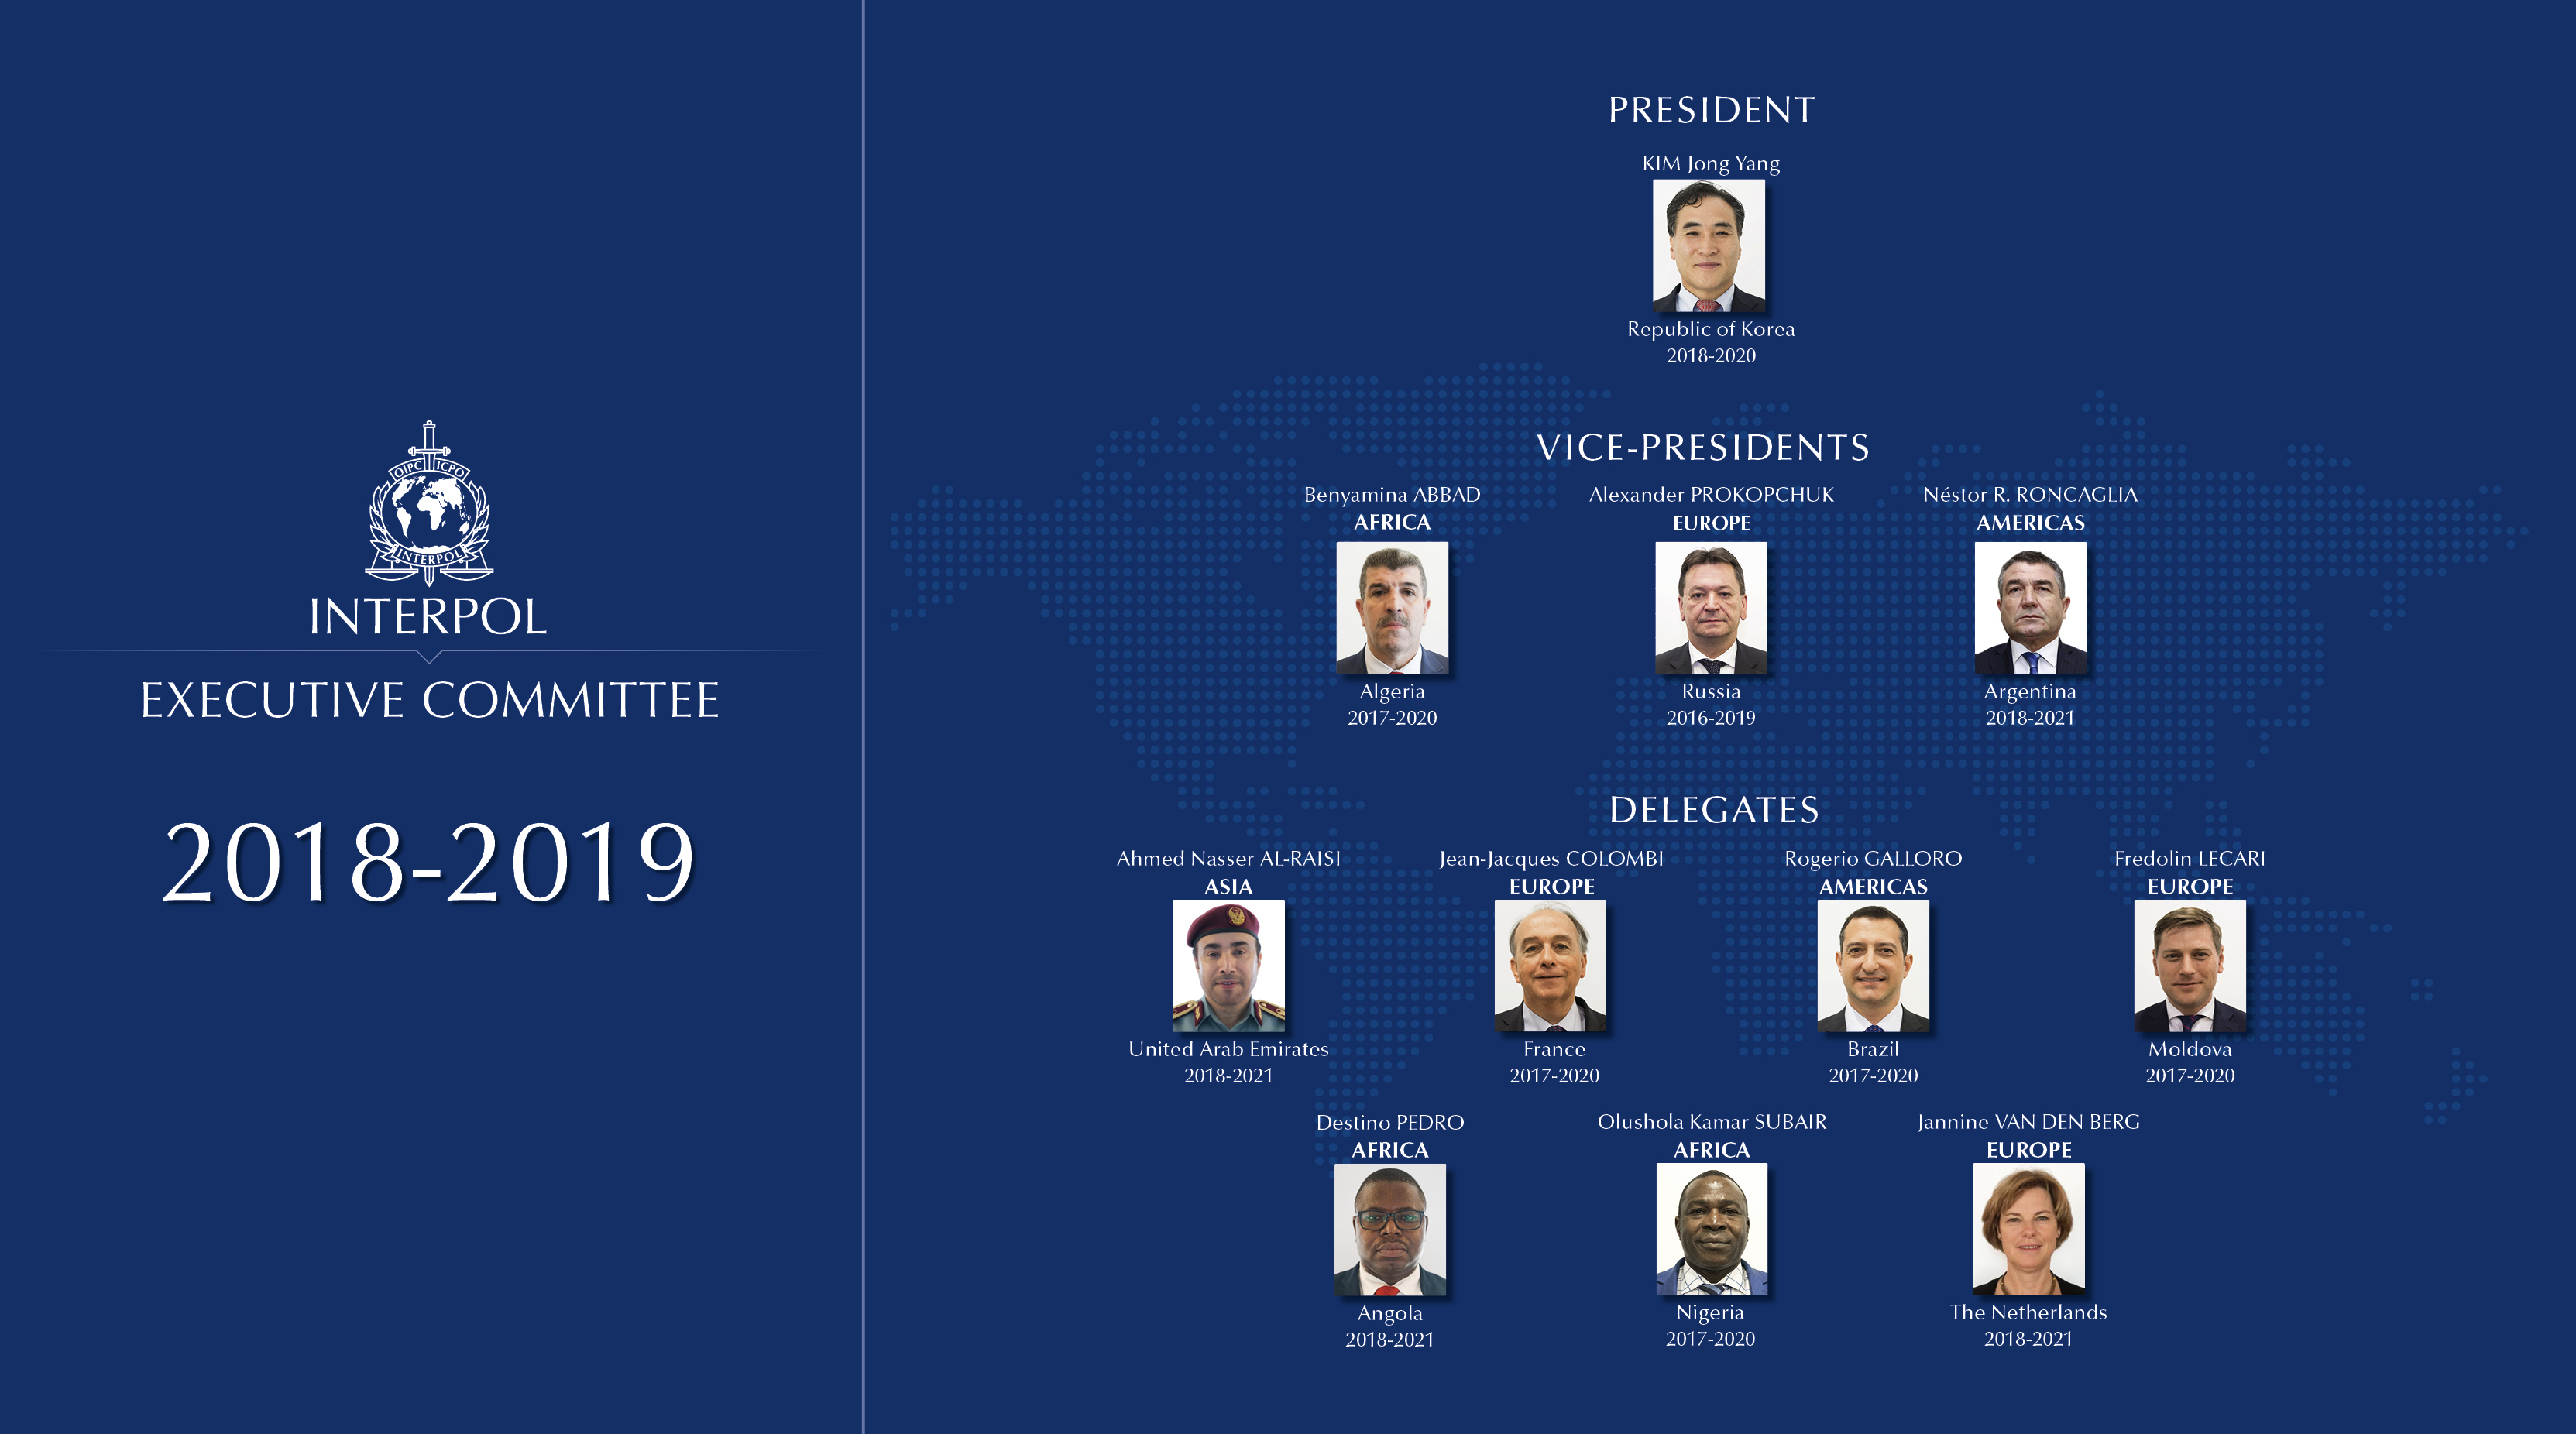 INTERPOL Executive Committee members 2019